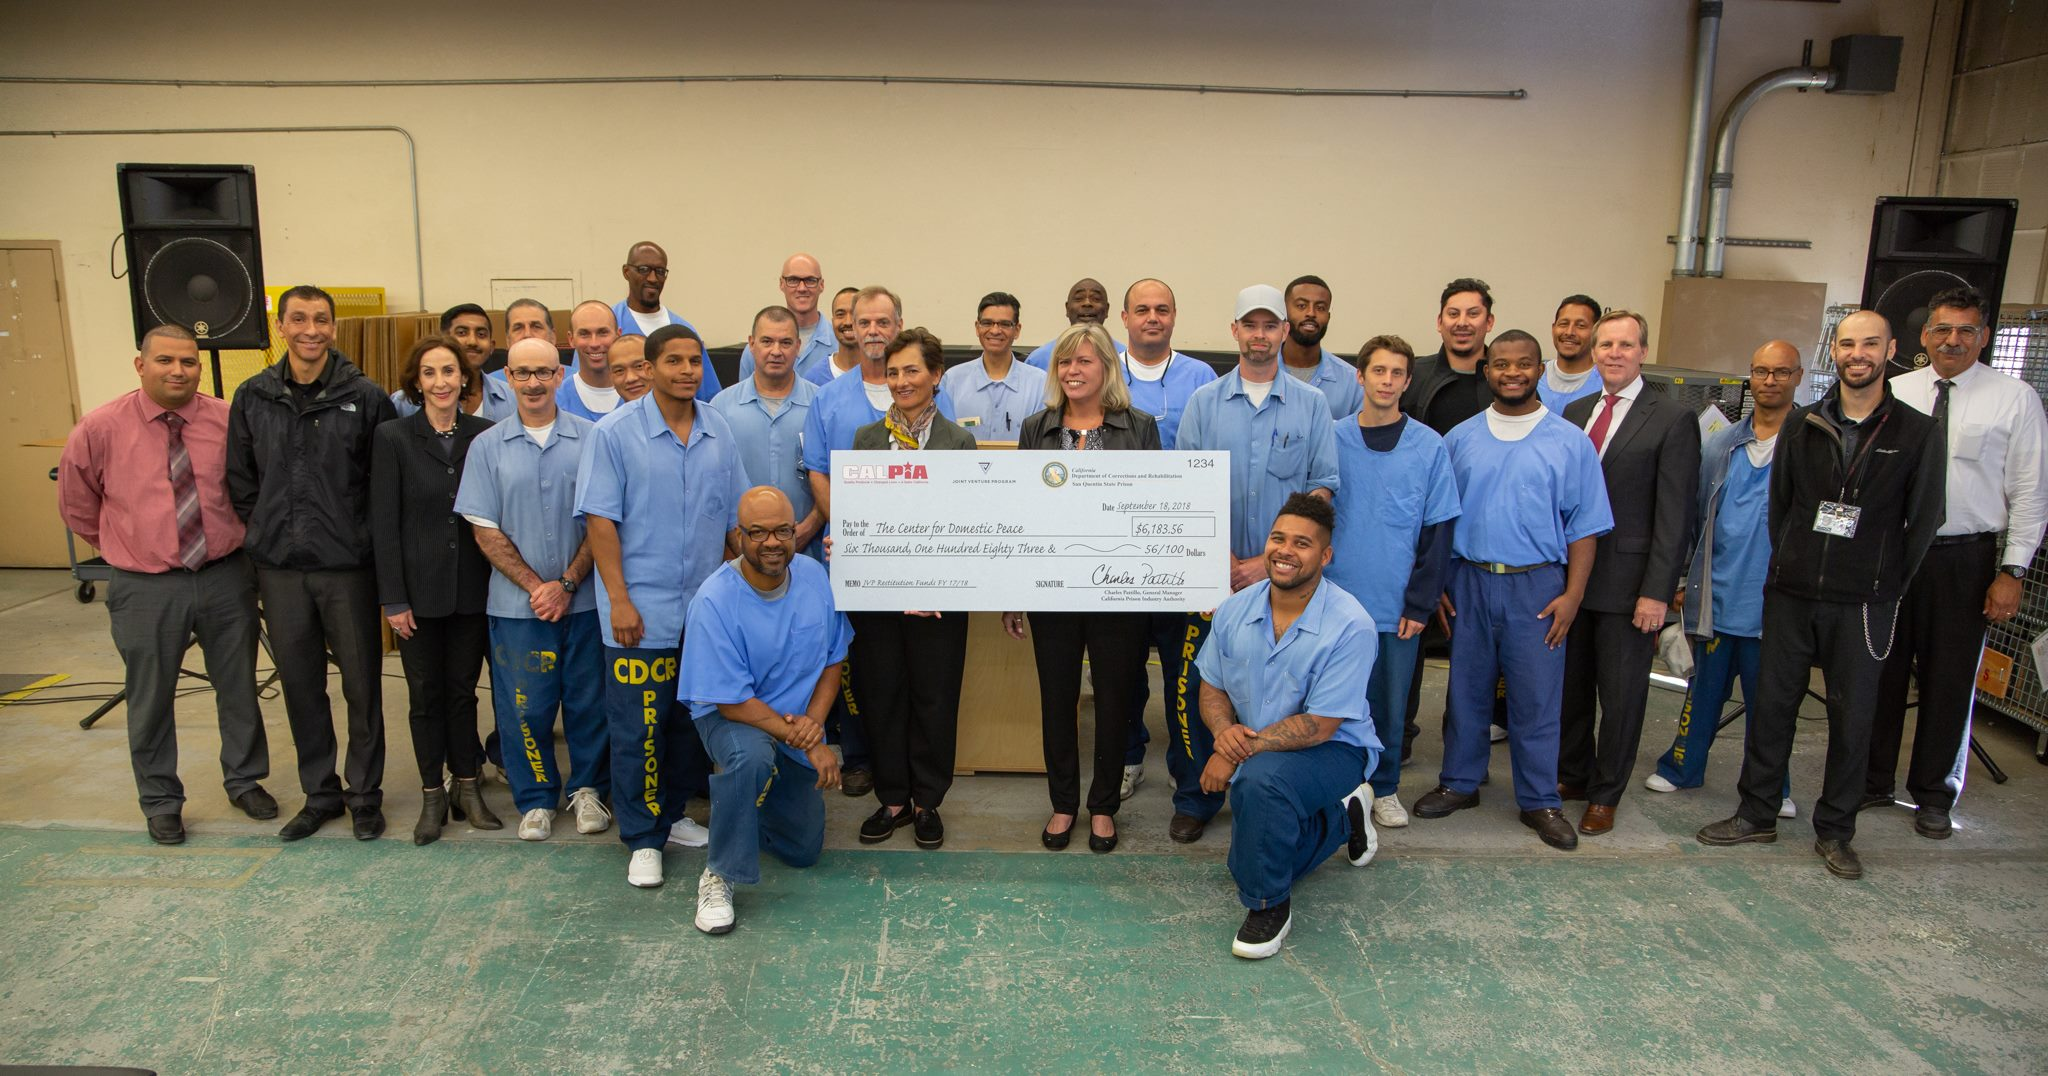 Joint Venture Program - incarcerated individuals posting a group picture